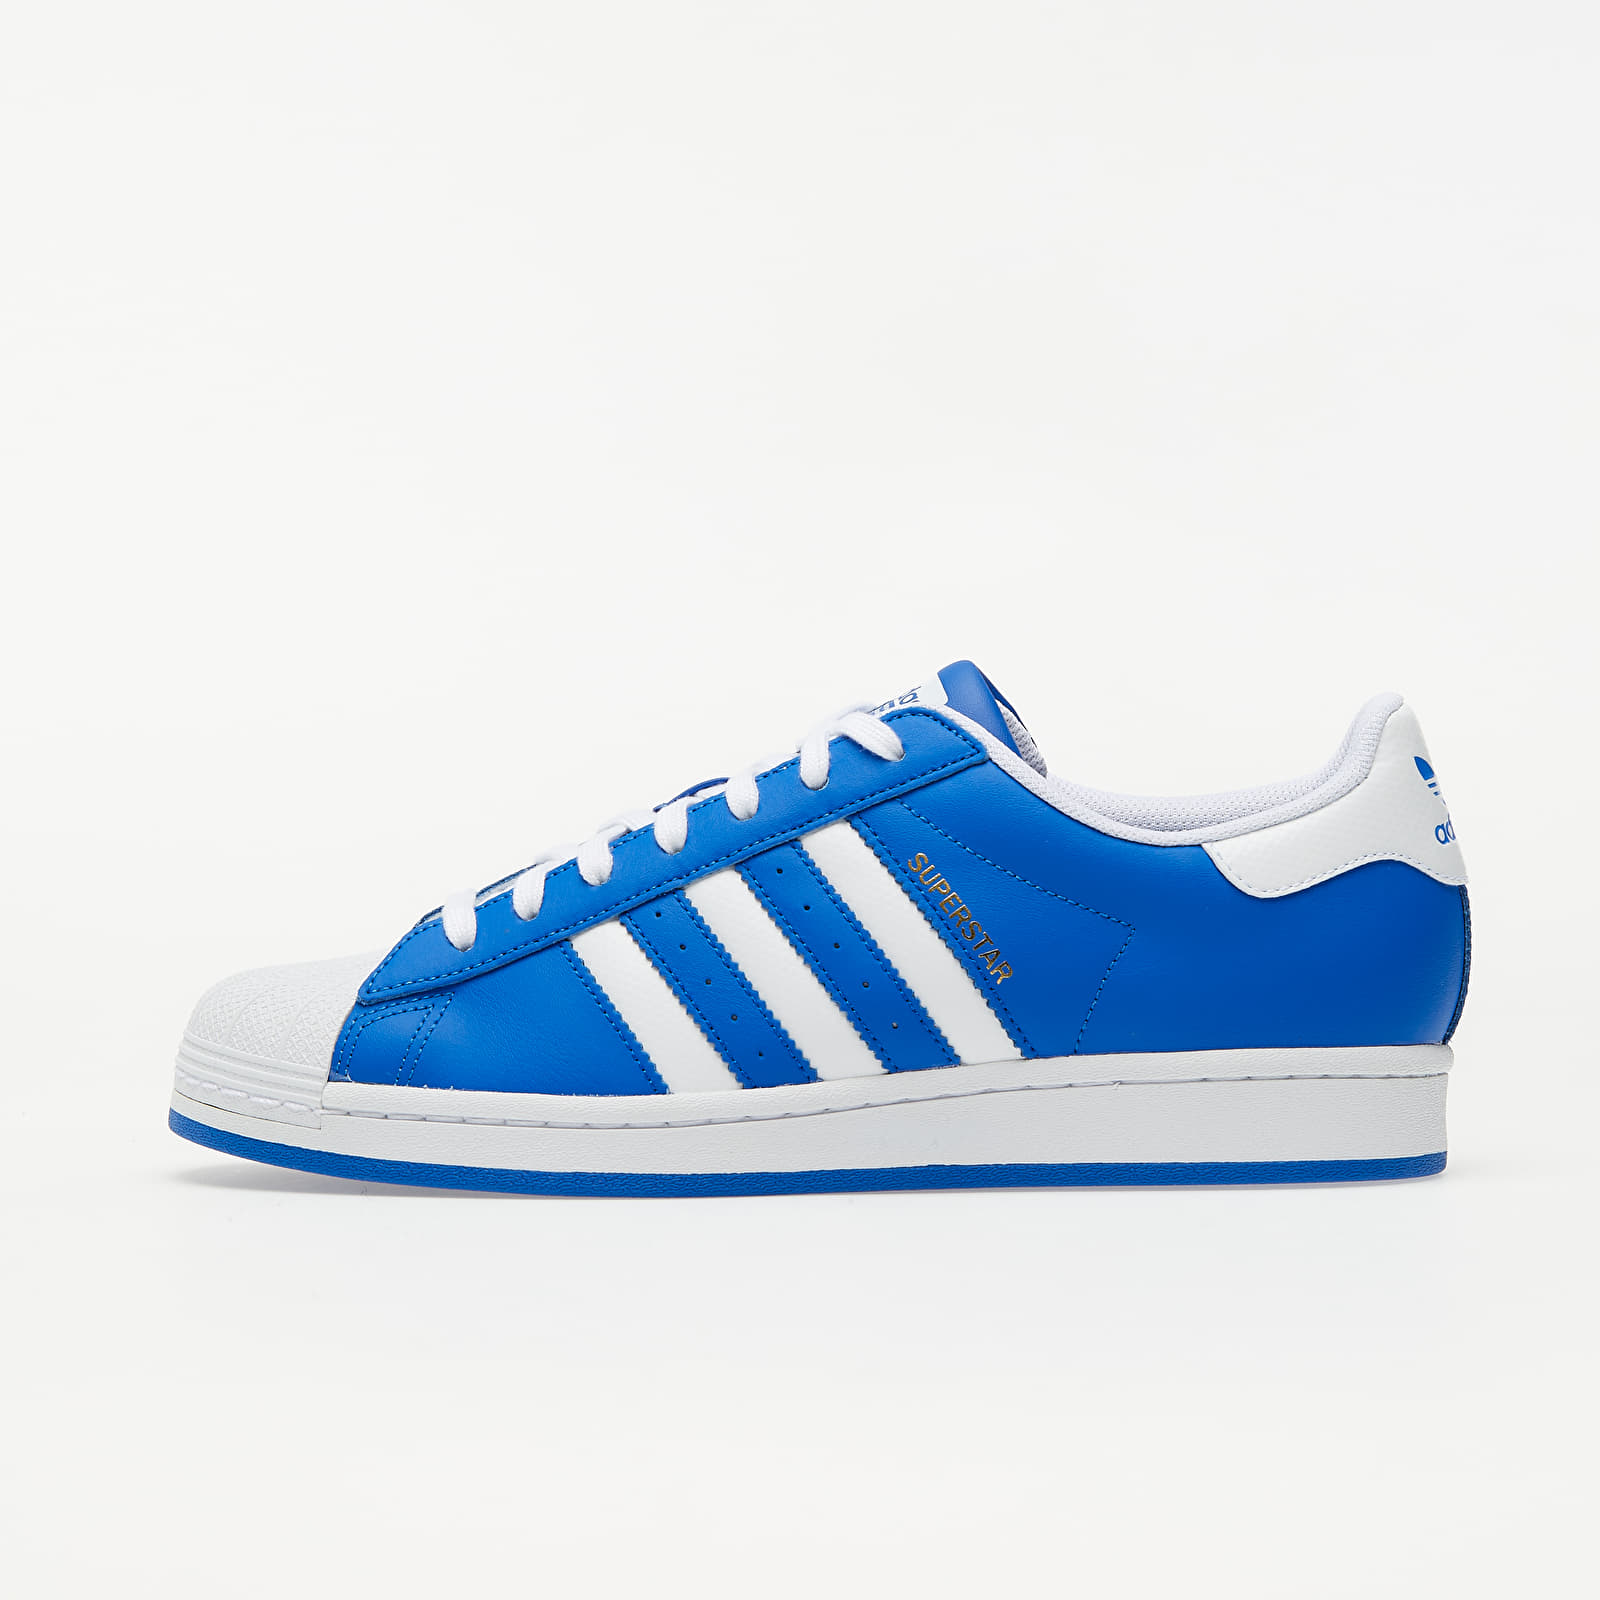 adidas Superstar Blue/ Ftw White/ Gold Metalic FW6010